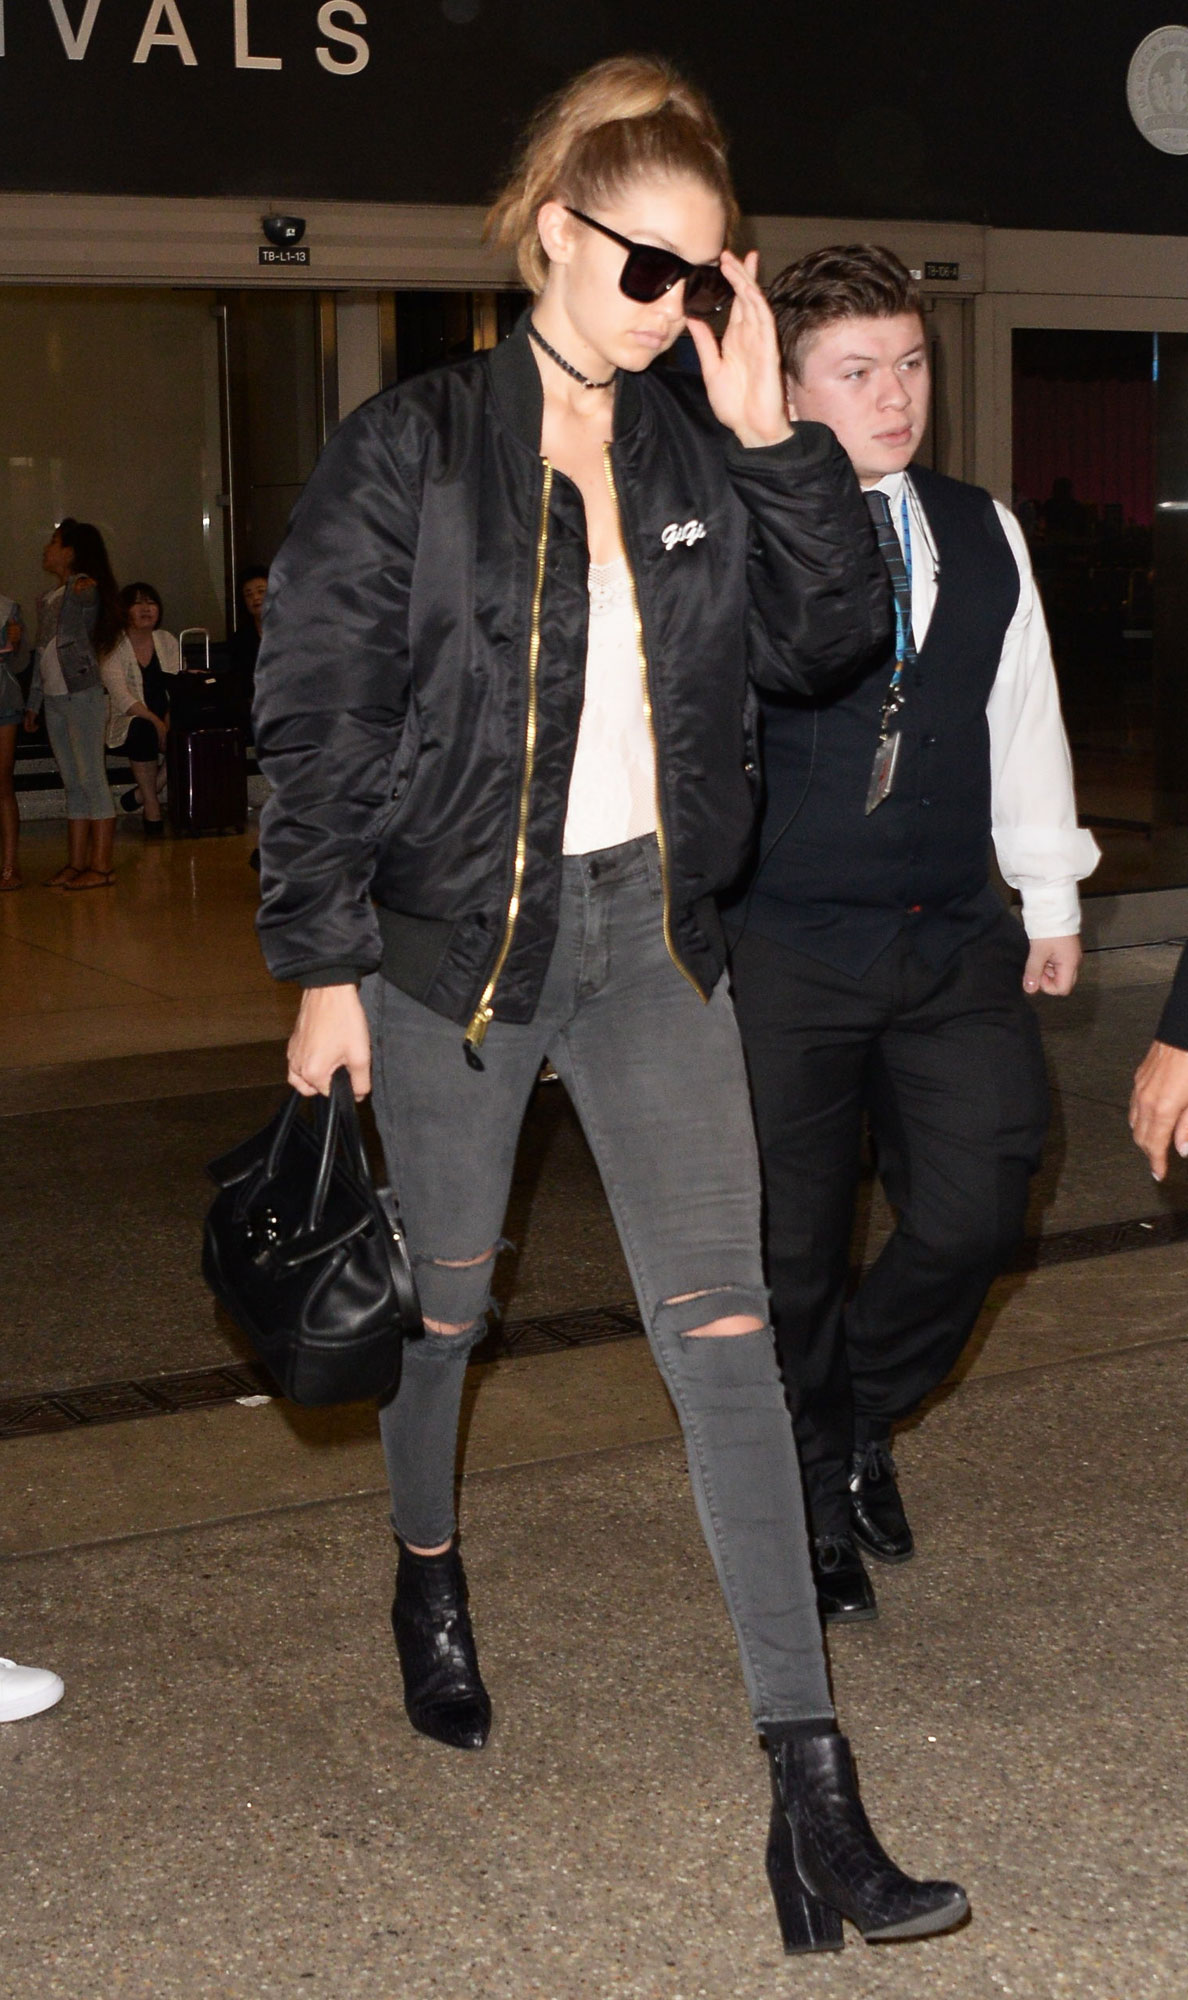 Gigi Hadid Wears a Bomber Jacket with Boyfriend Zayn Malik's Name Written on It